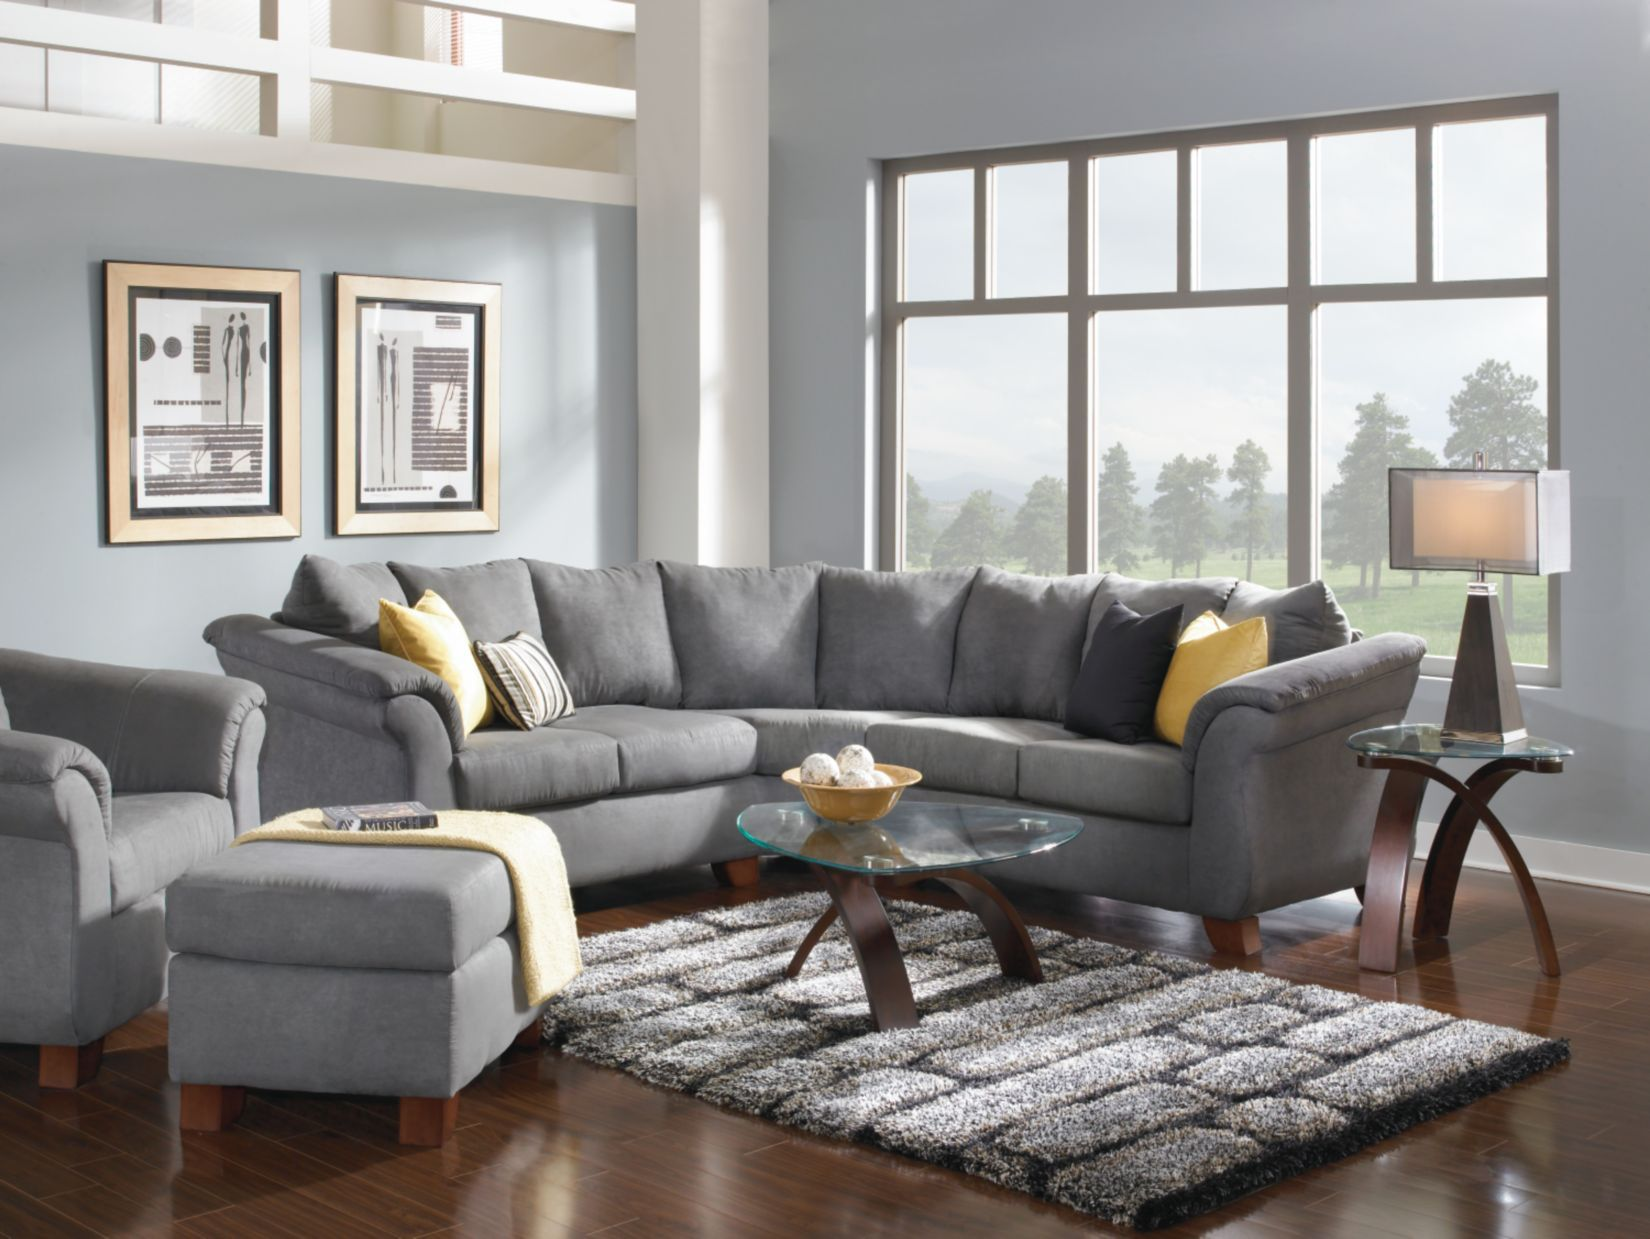 city furniture living room set modern style adrian graphite 4 pc package value